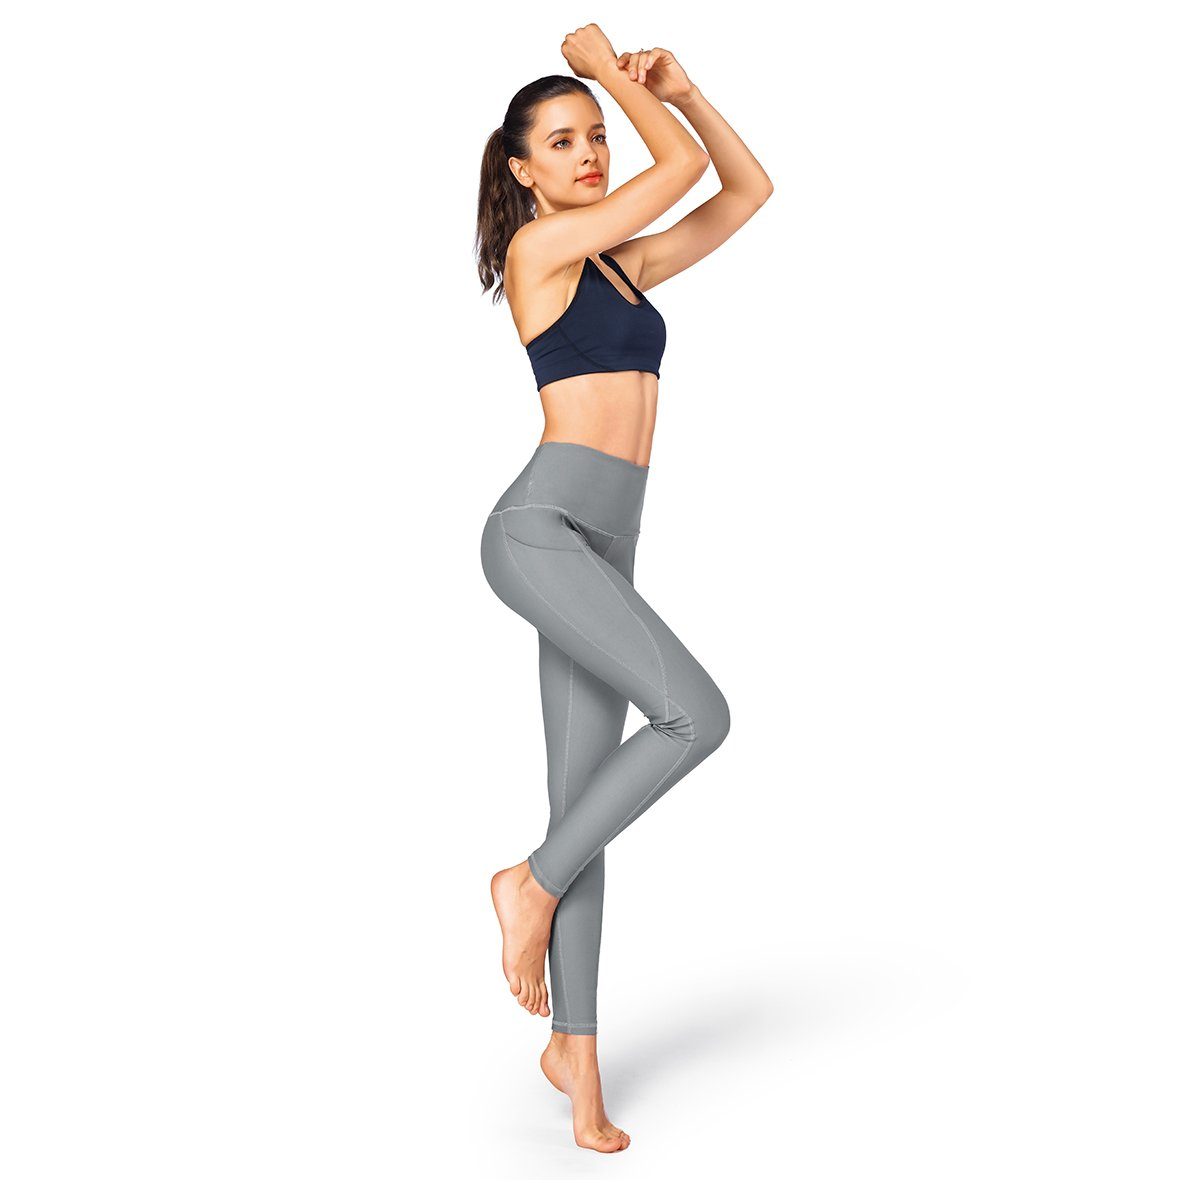 9a5e6dba1f573 Occffy High Waist Out Pocket Yoga Pants for Women Tummy Control Workout  Clothes Ladies Leggings [1541650425-297413] - $8.57